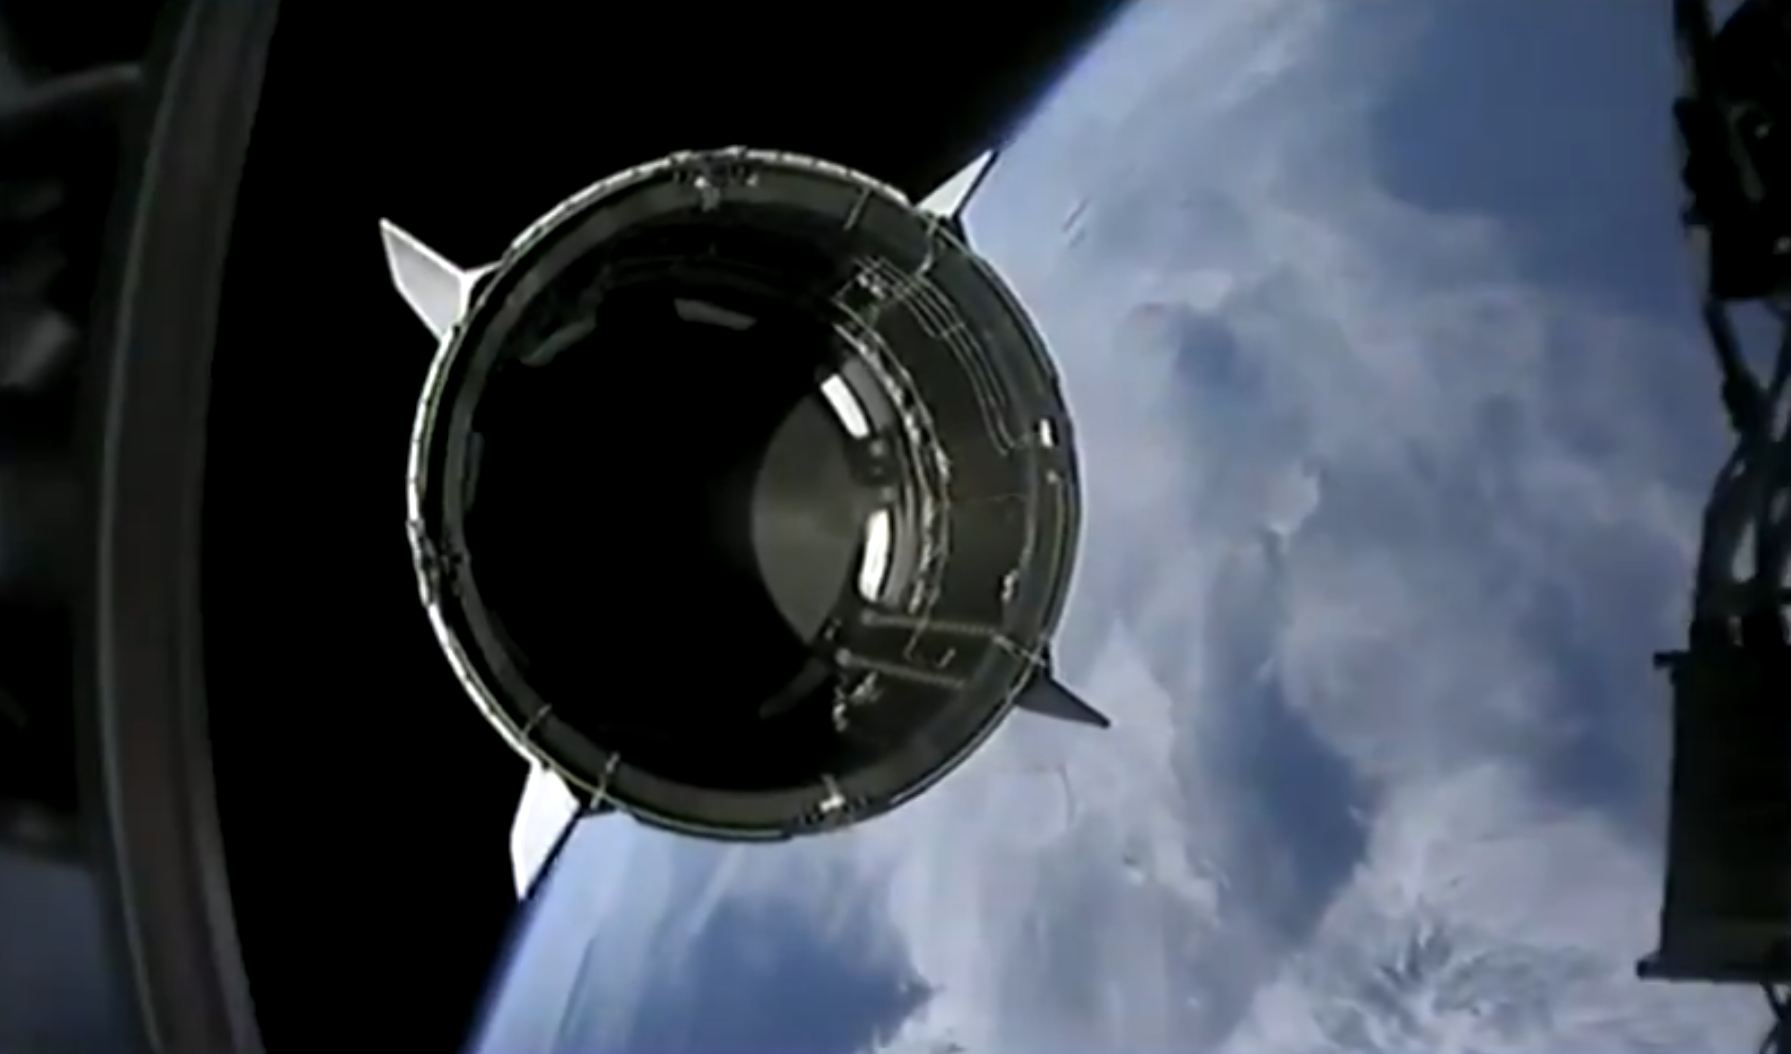 Crew Dragon separates from Falcon 9's second stage. Image credit: SpaceX